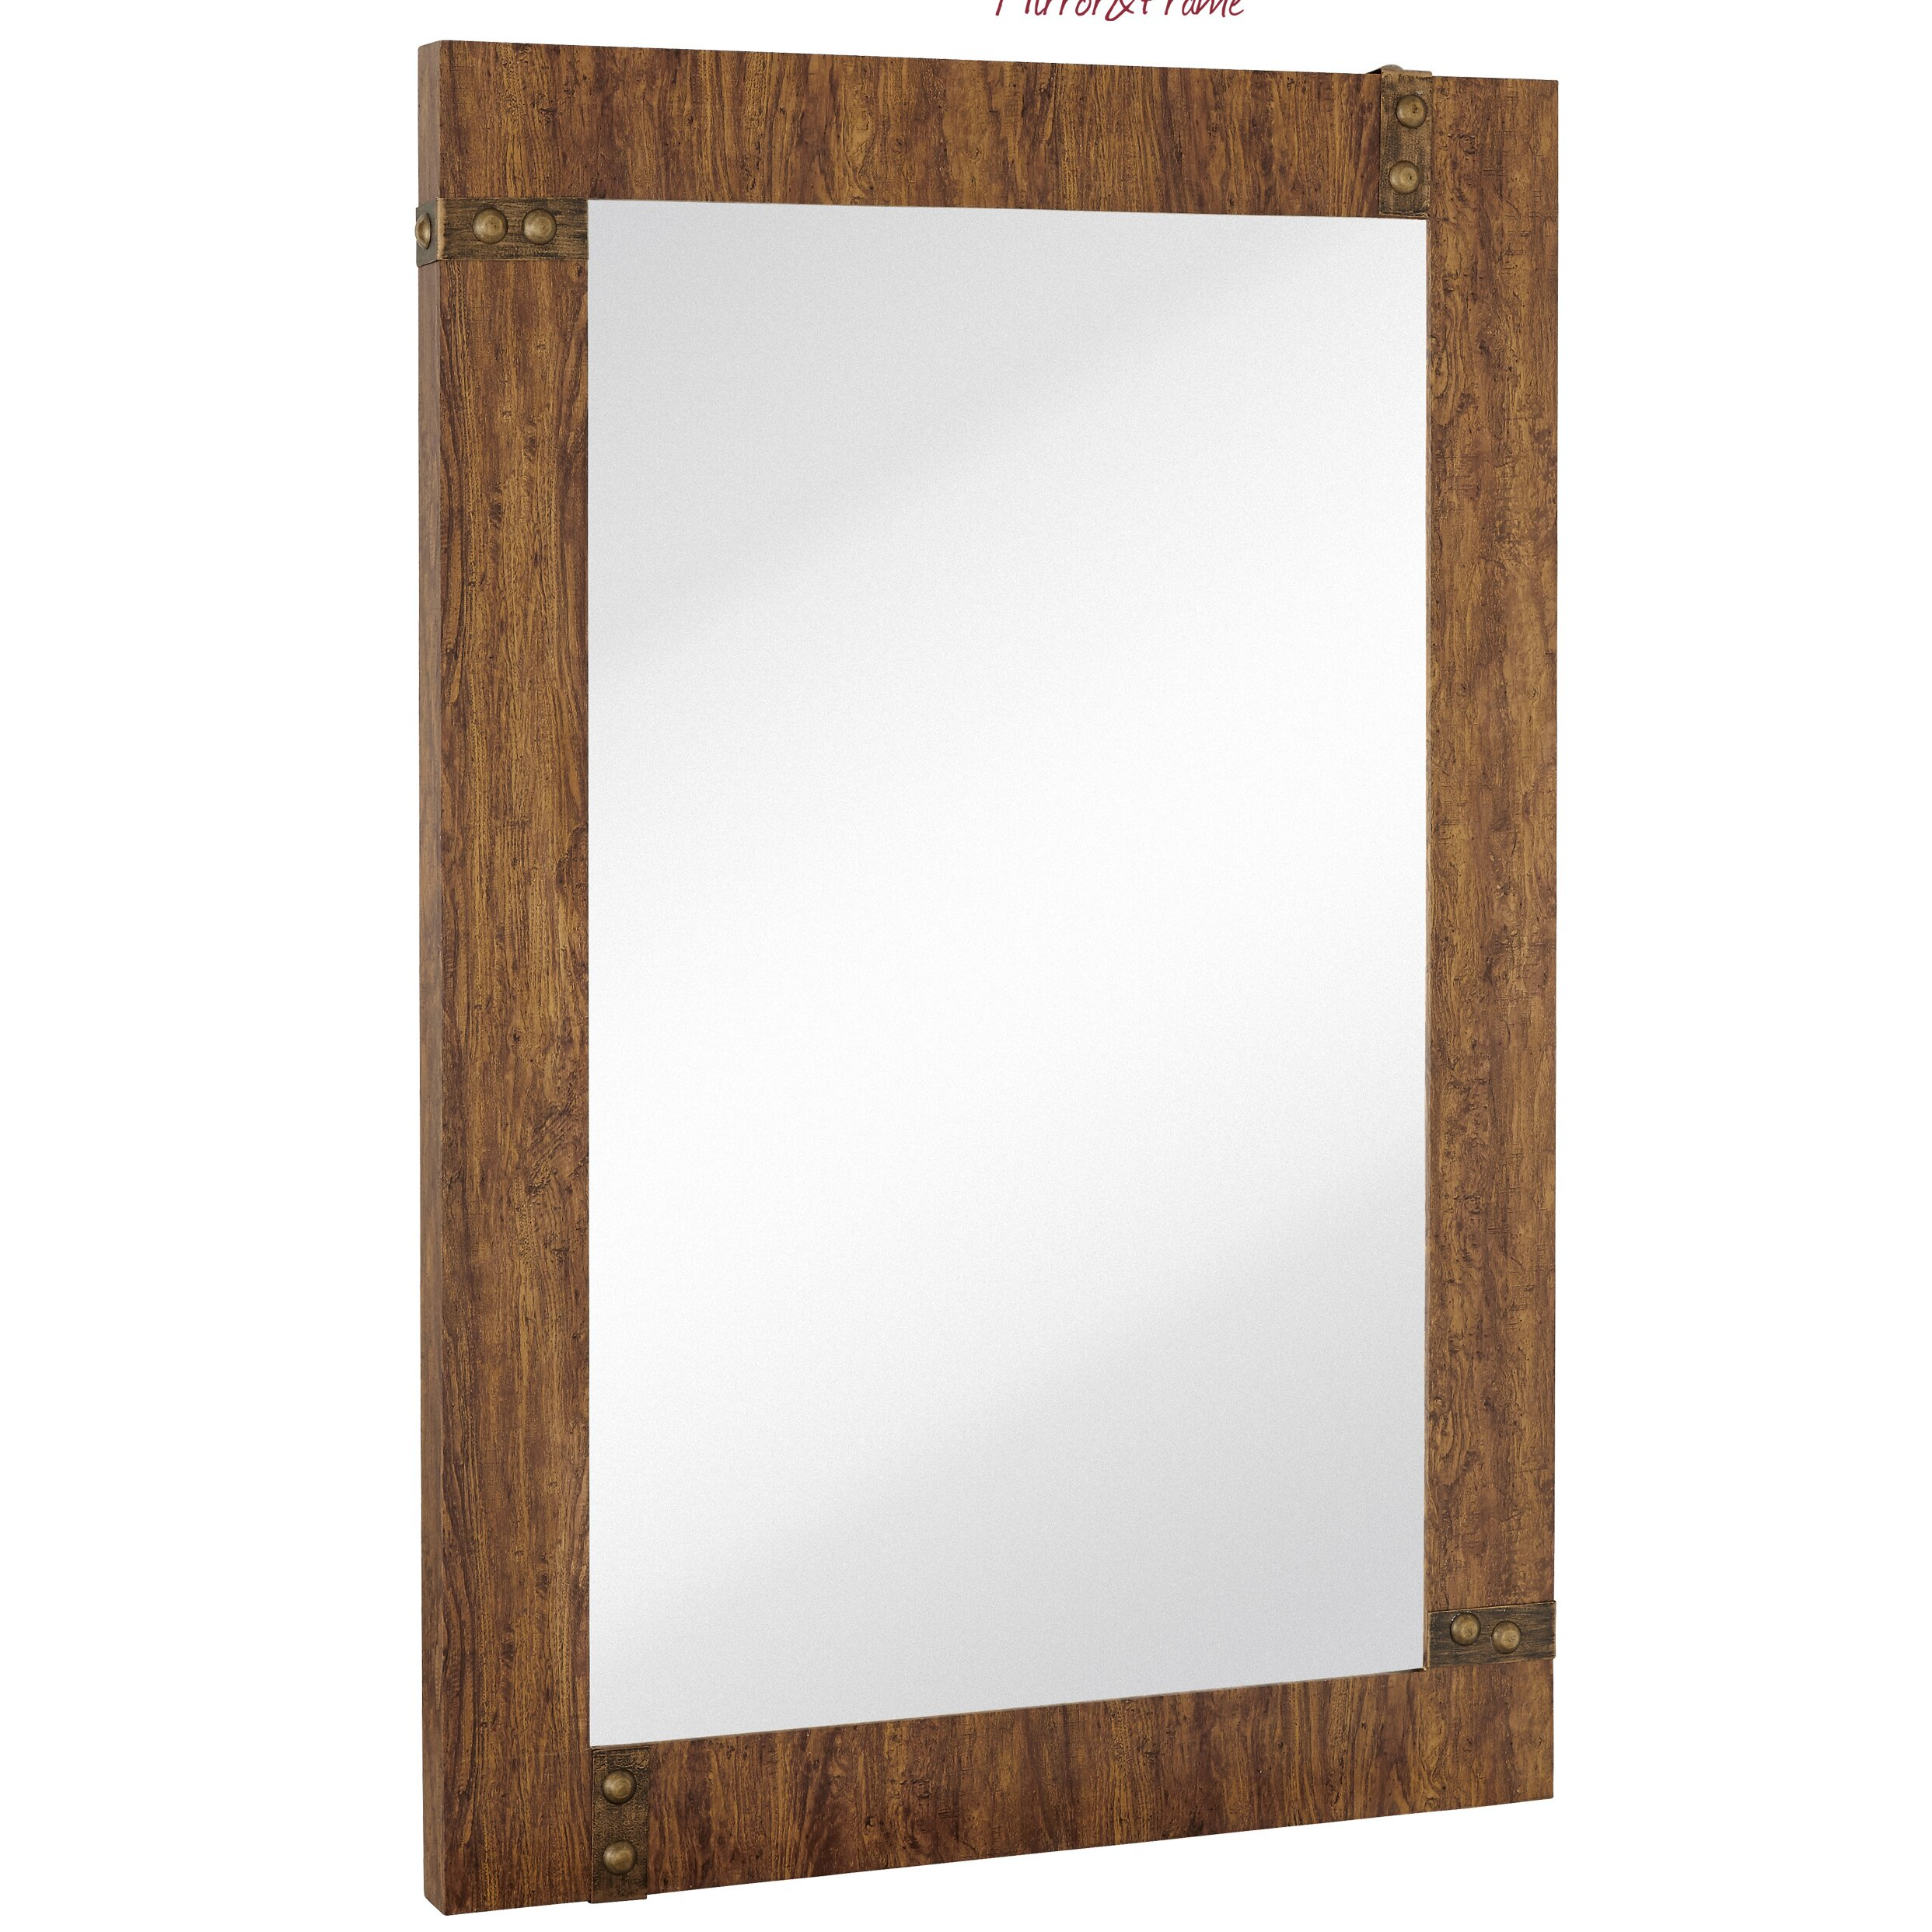 Majestic mirror large rectangular mirror with stained wood for Timber frame accents